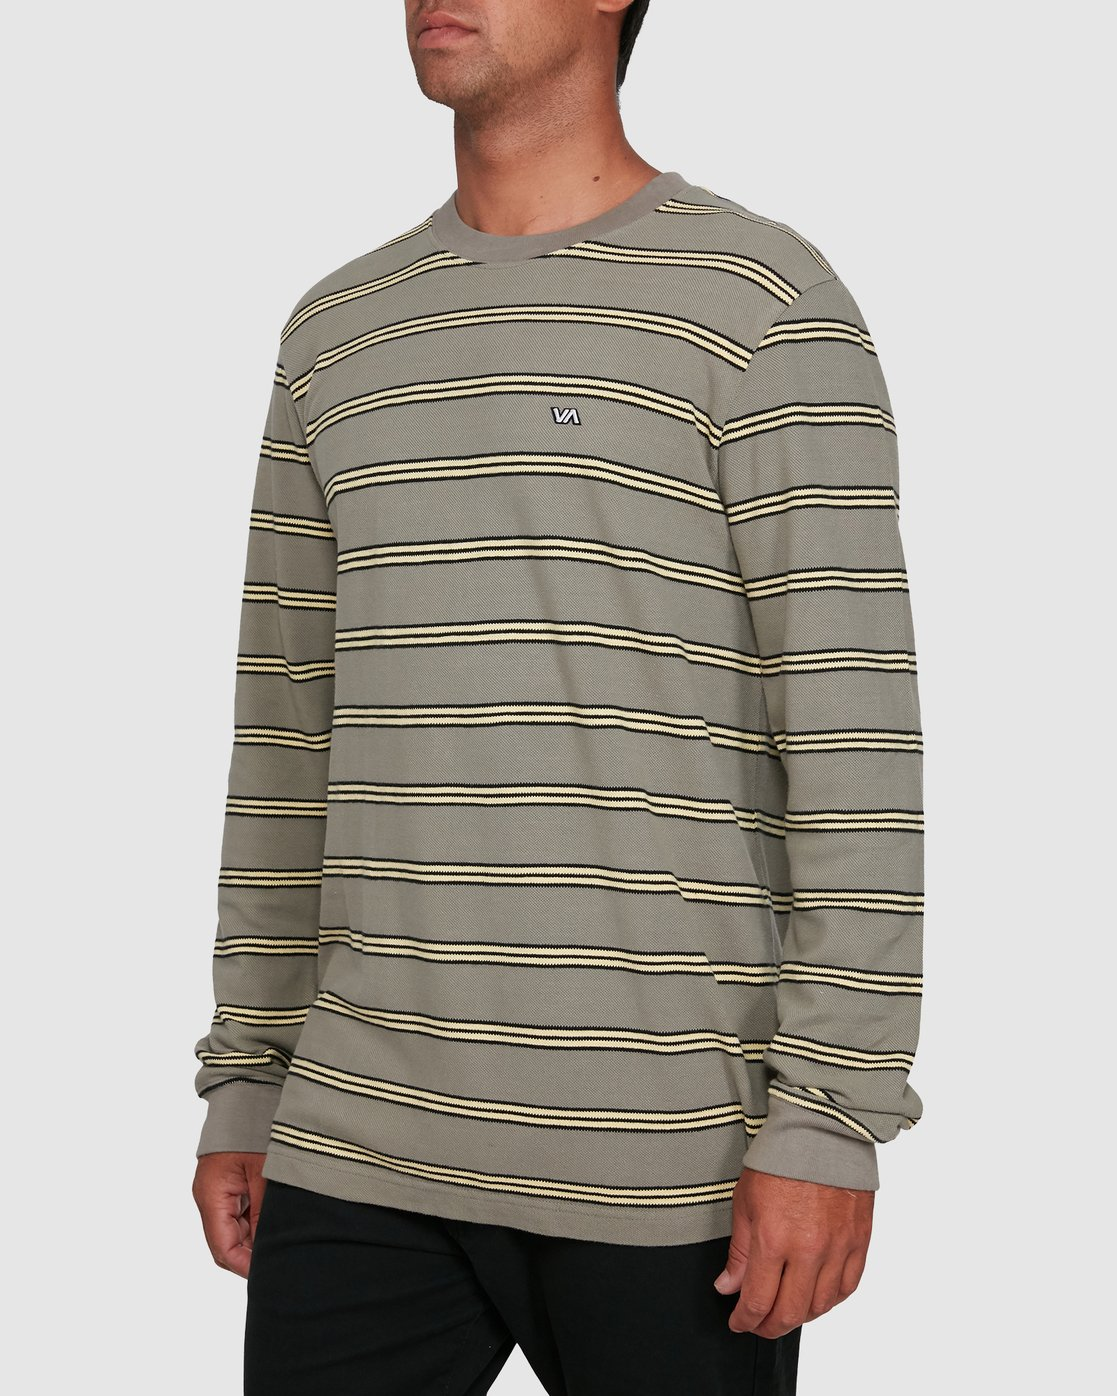 2 BLOOM PIQUE STRIPE LS TEE Green R105091 RVCA